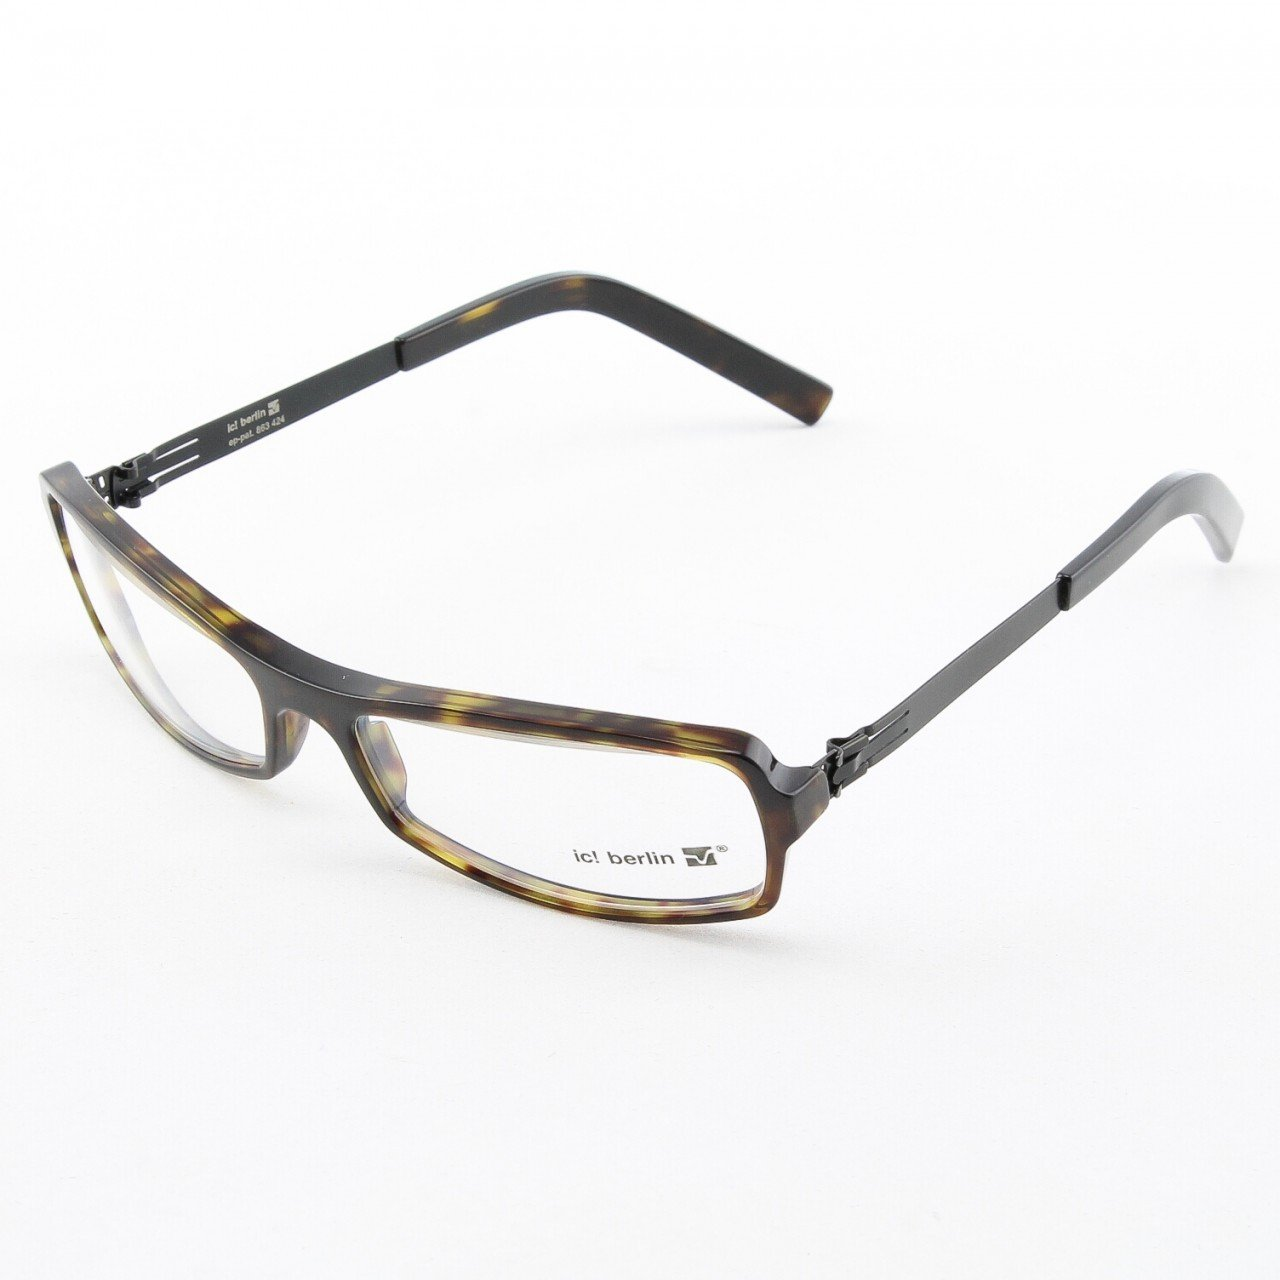 ic! Berlin Lili Eyeglasses Col. tortois with Clear Lenses